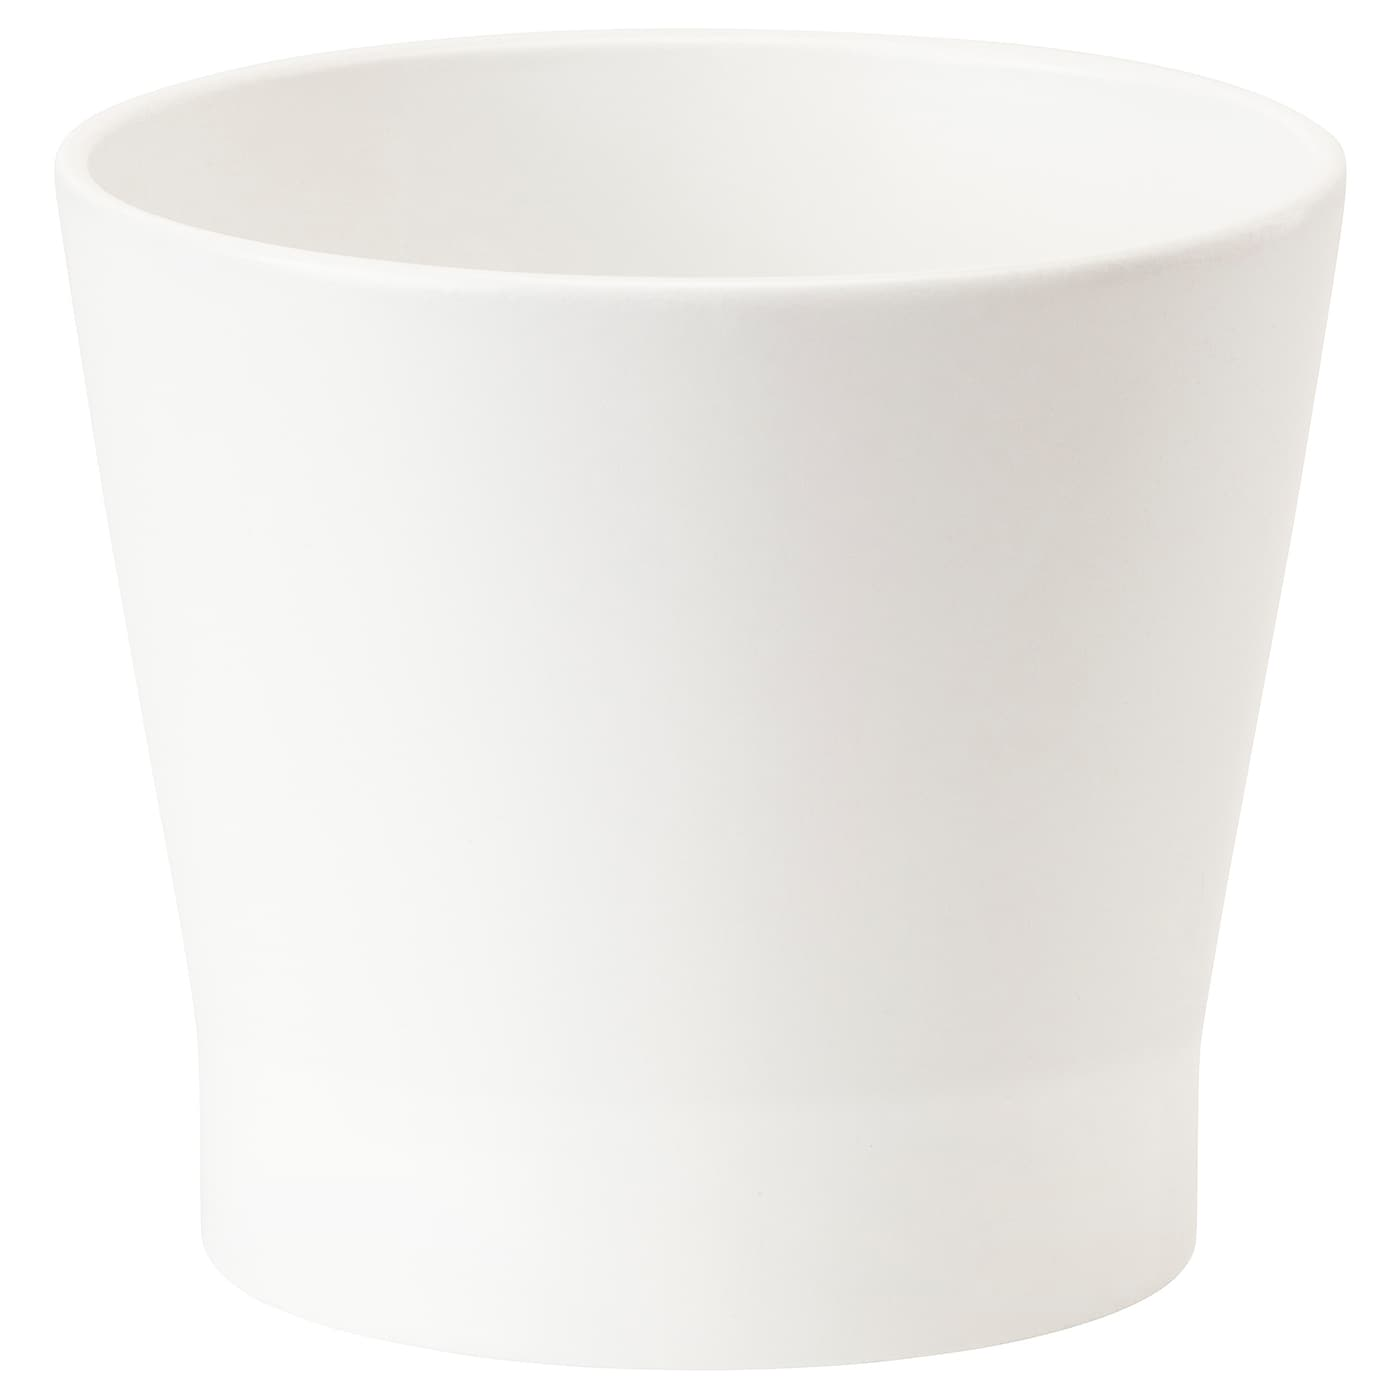 IKEA PAPAJA plant pot Lacquered interior; makes the plant pot waterproof.